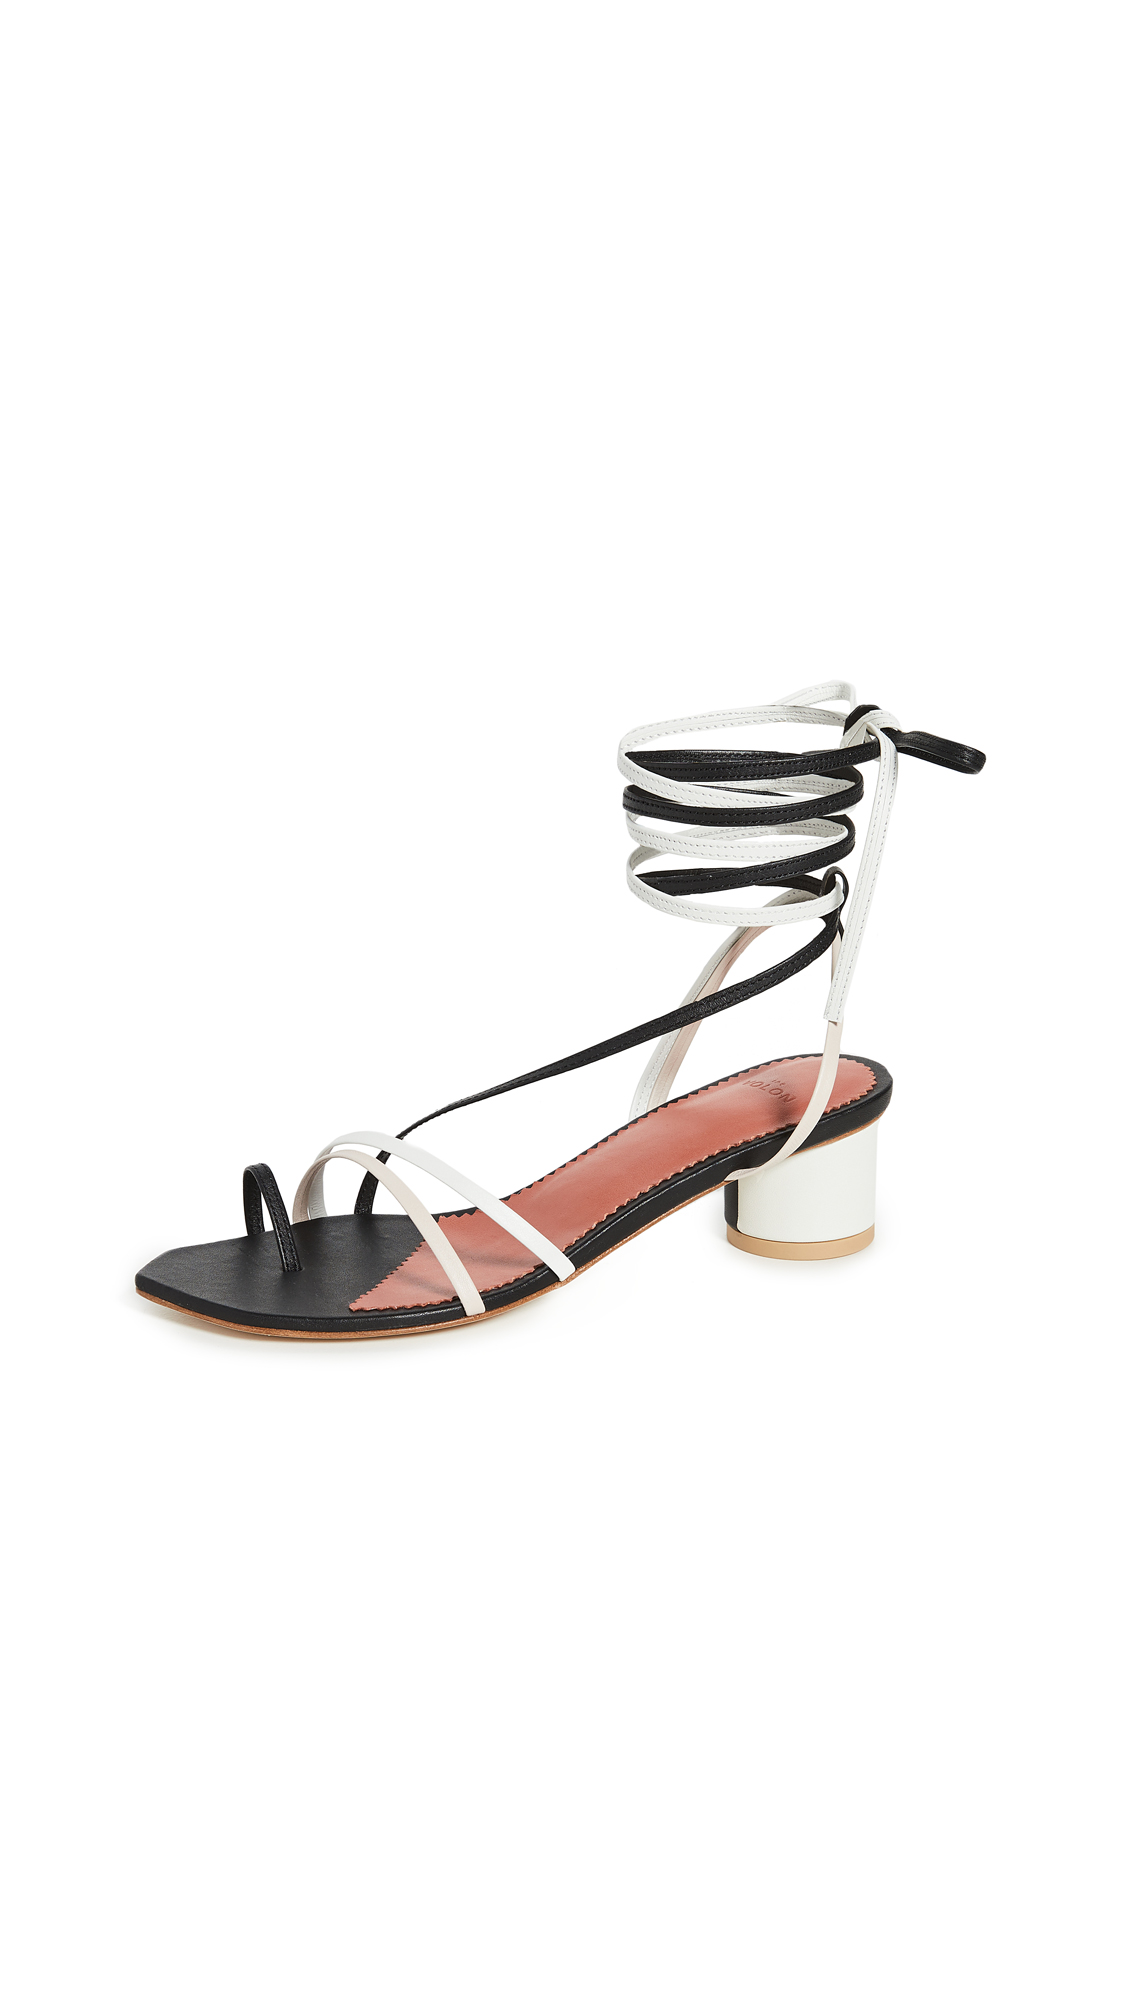 THE VOLON B'Way Sandals - 50% Off Sale